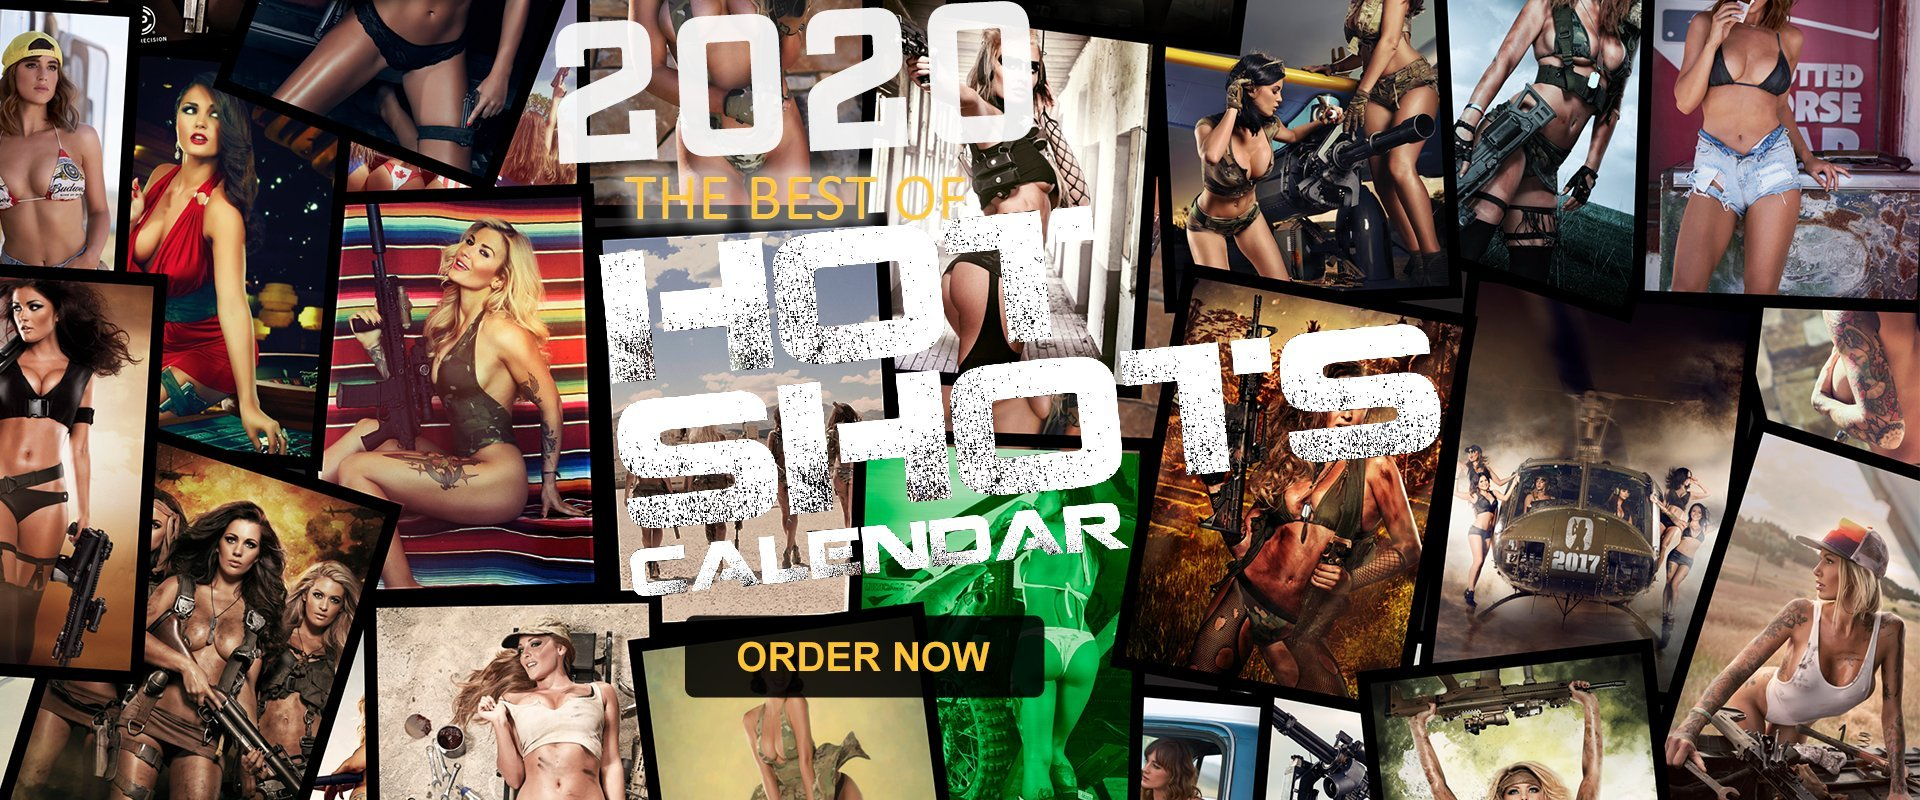 Hot Shots Calendar 2019 Coming Soon